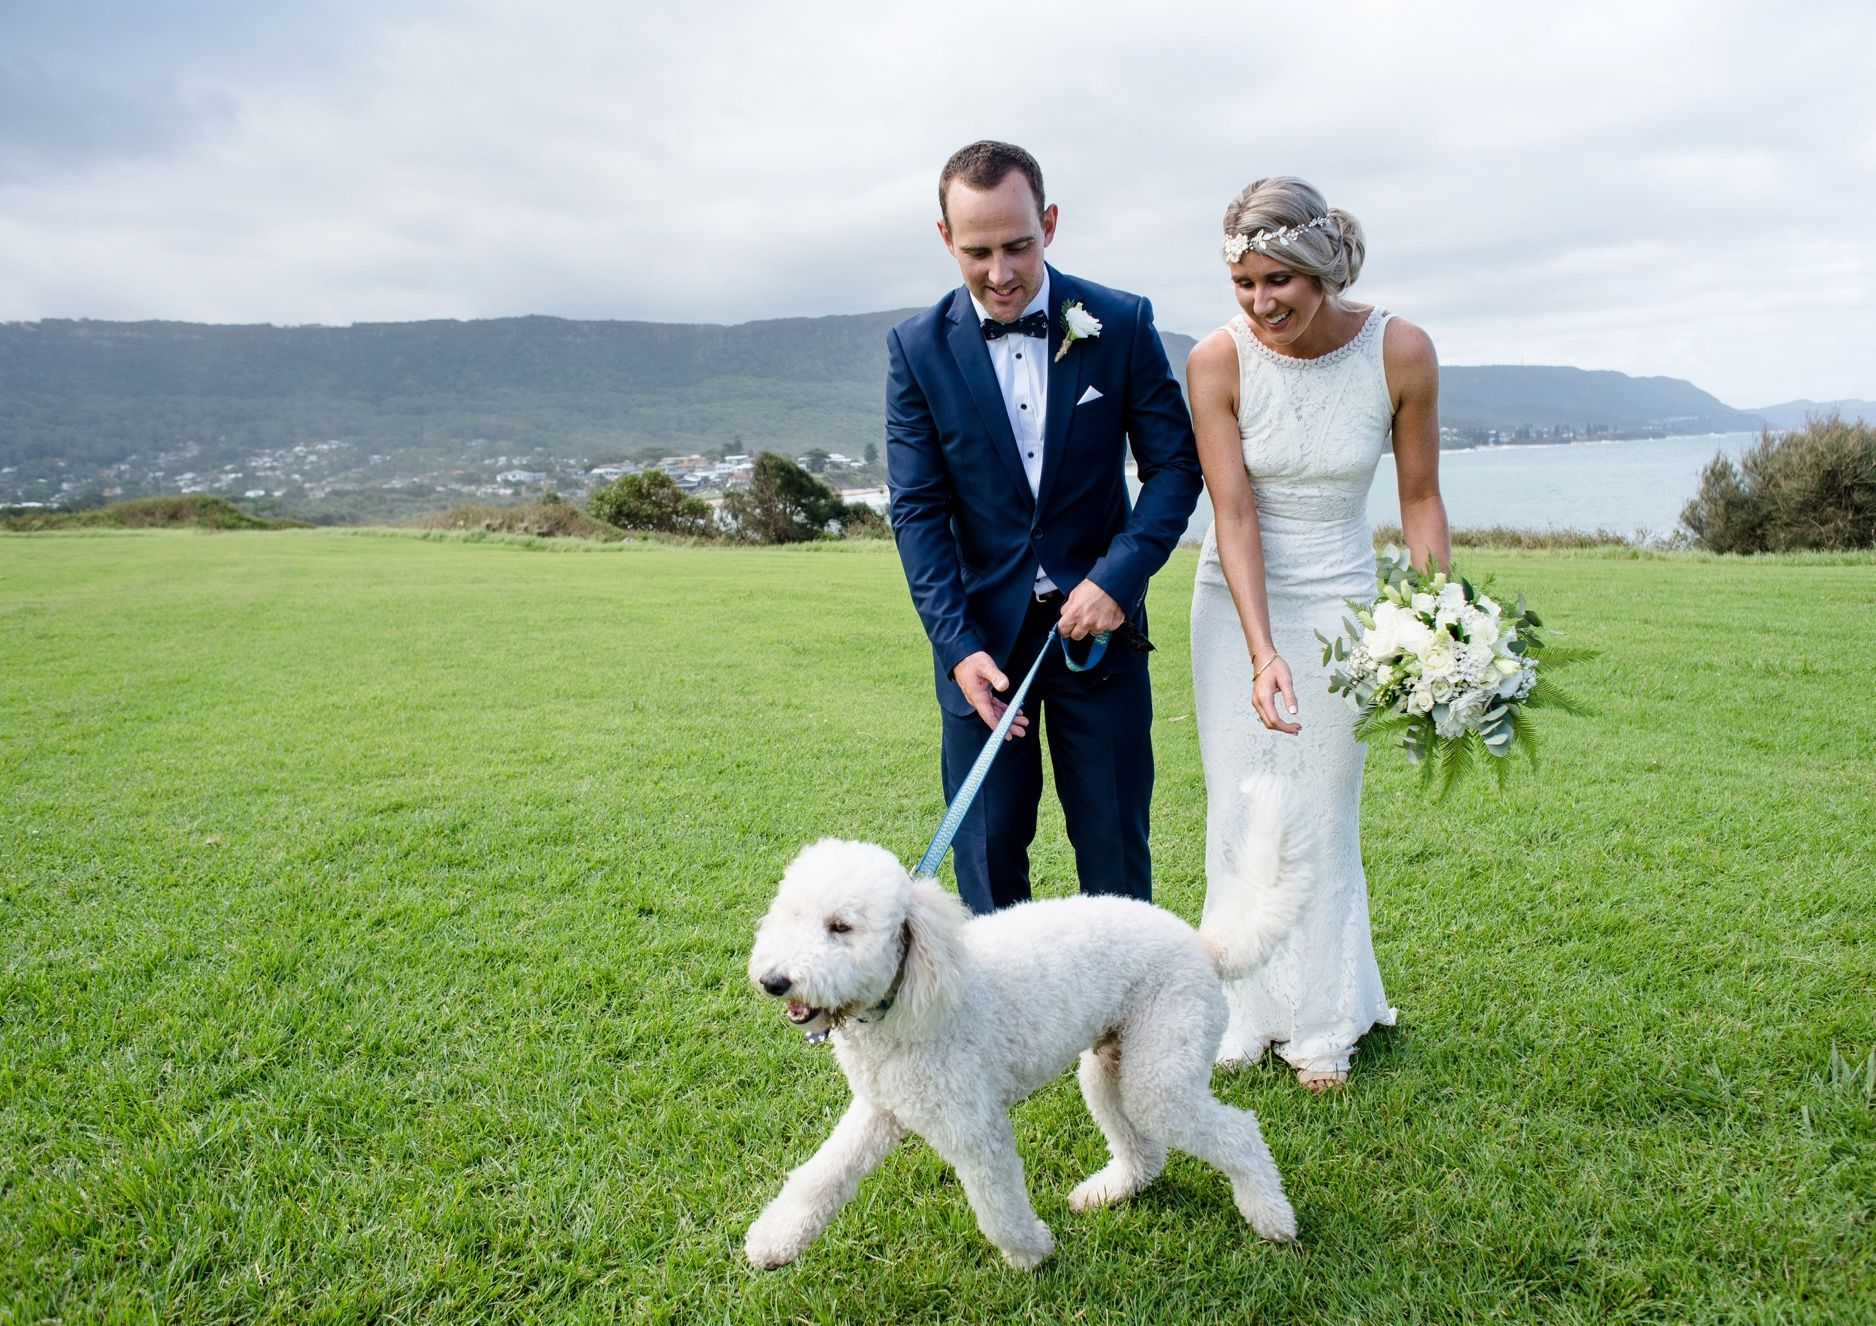 wedding day with a pet